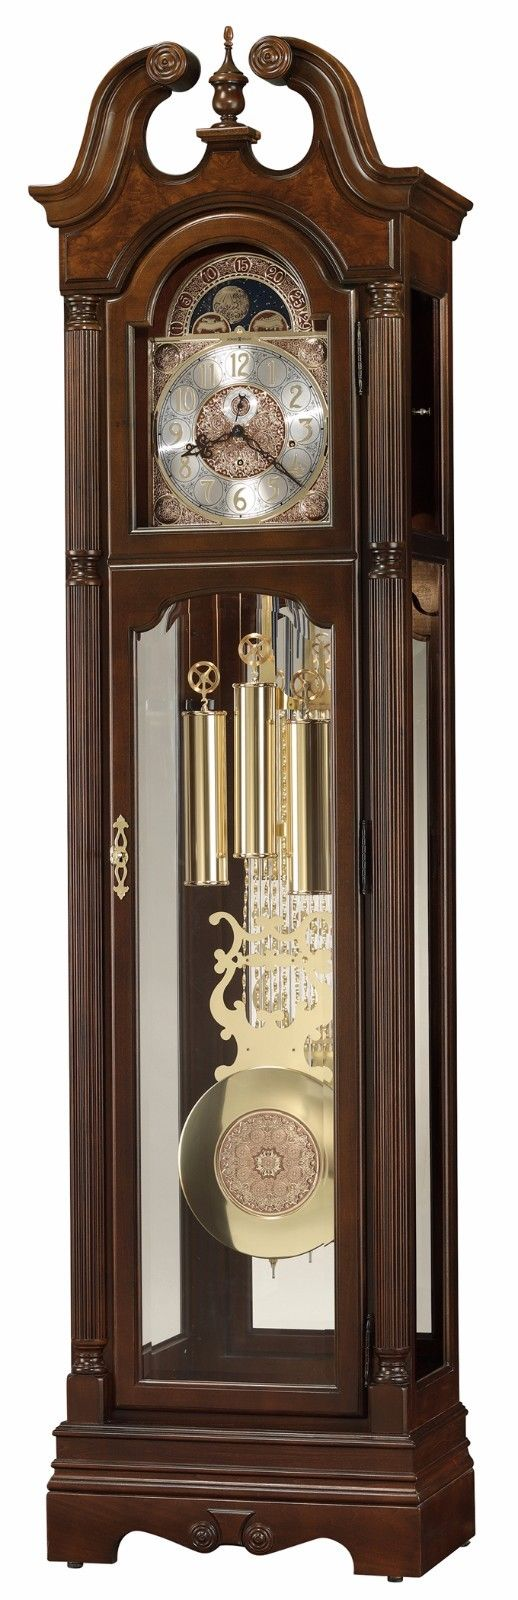 Howard Miller Wellston Grandfather Floor Clock 611-262 611262 FREE Shipping